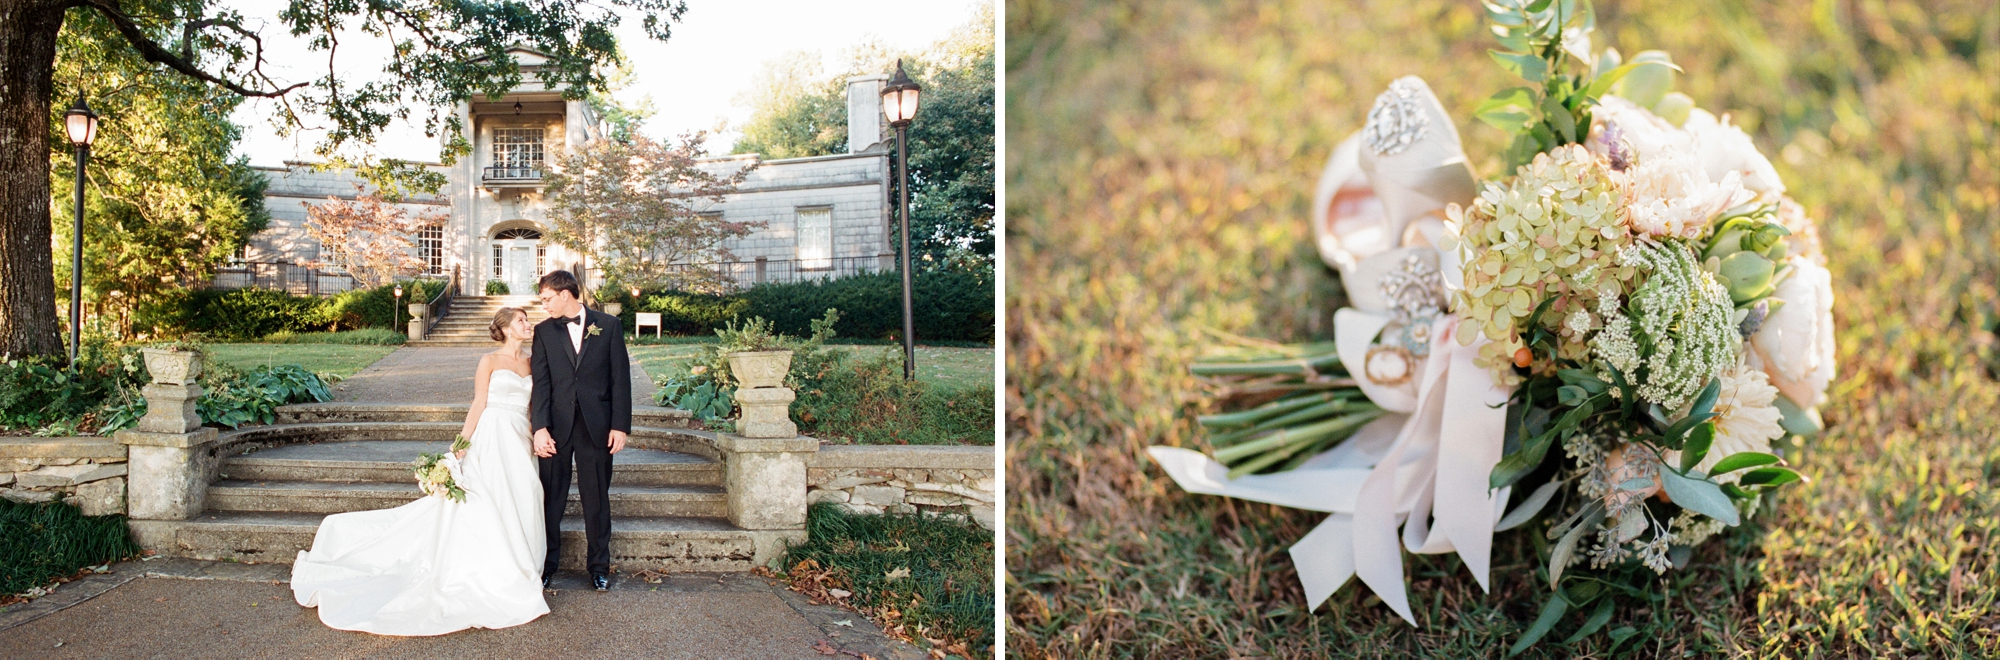 southern wedding film photographer_0055